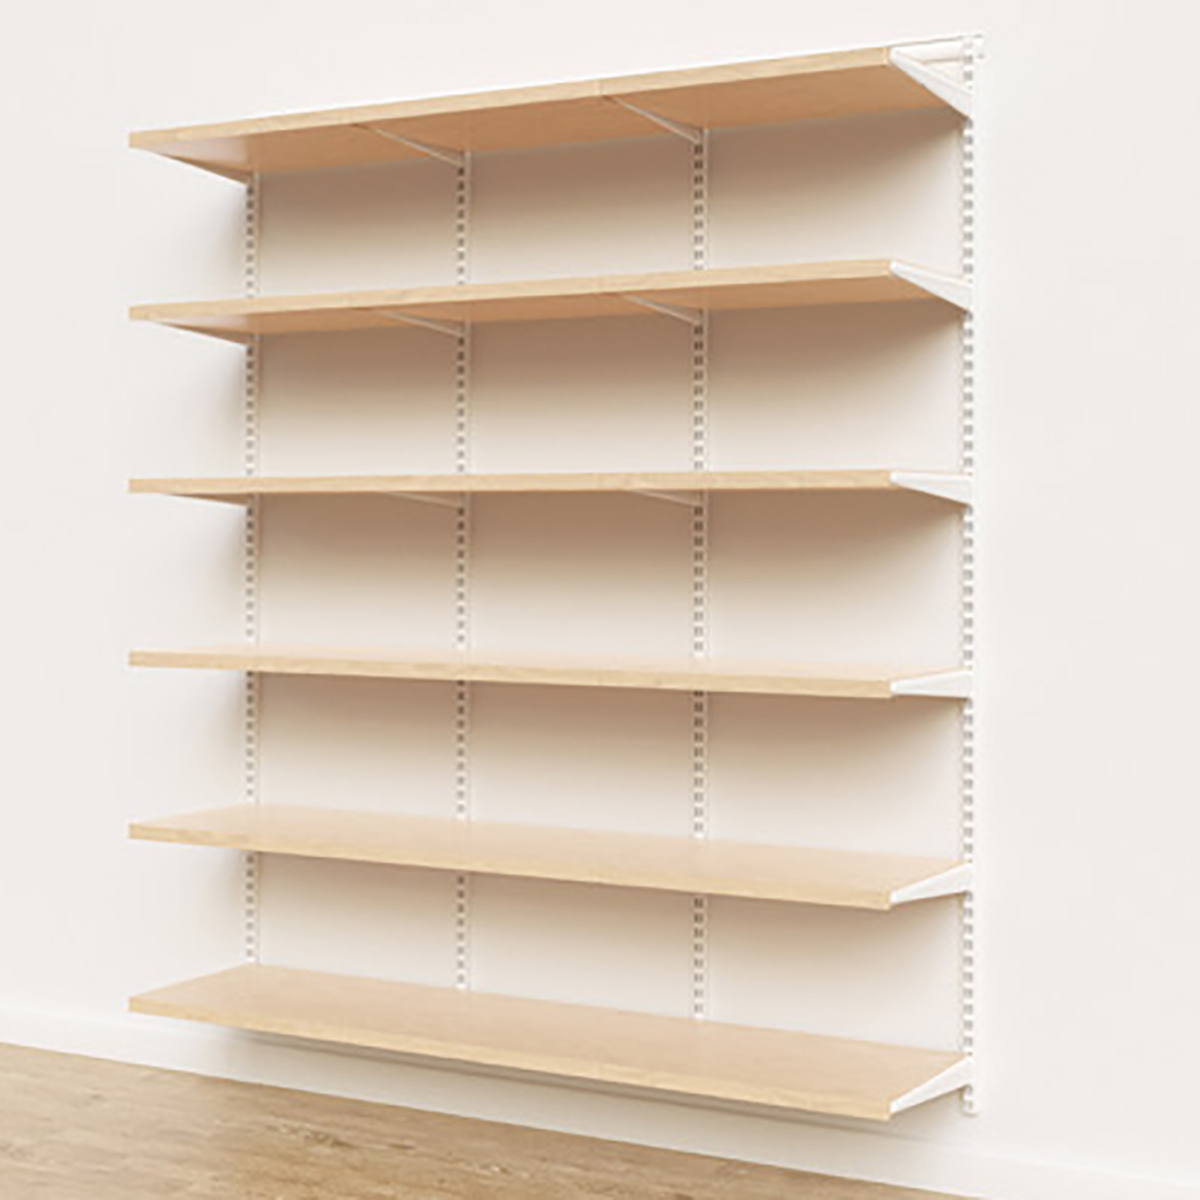 Elfa Décor 6' White & Birch Basic Shelving Units for Anywhere